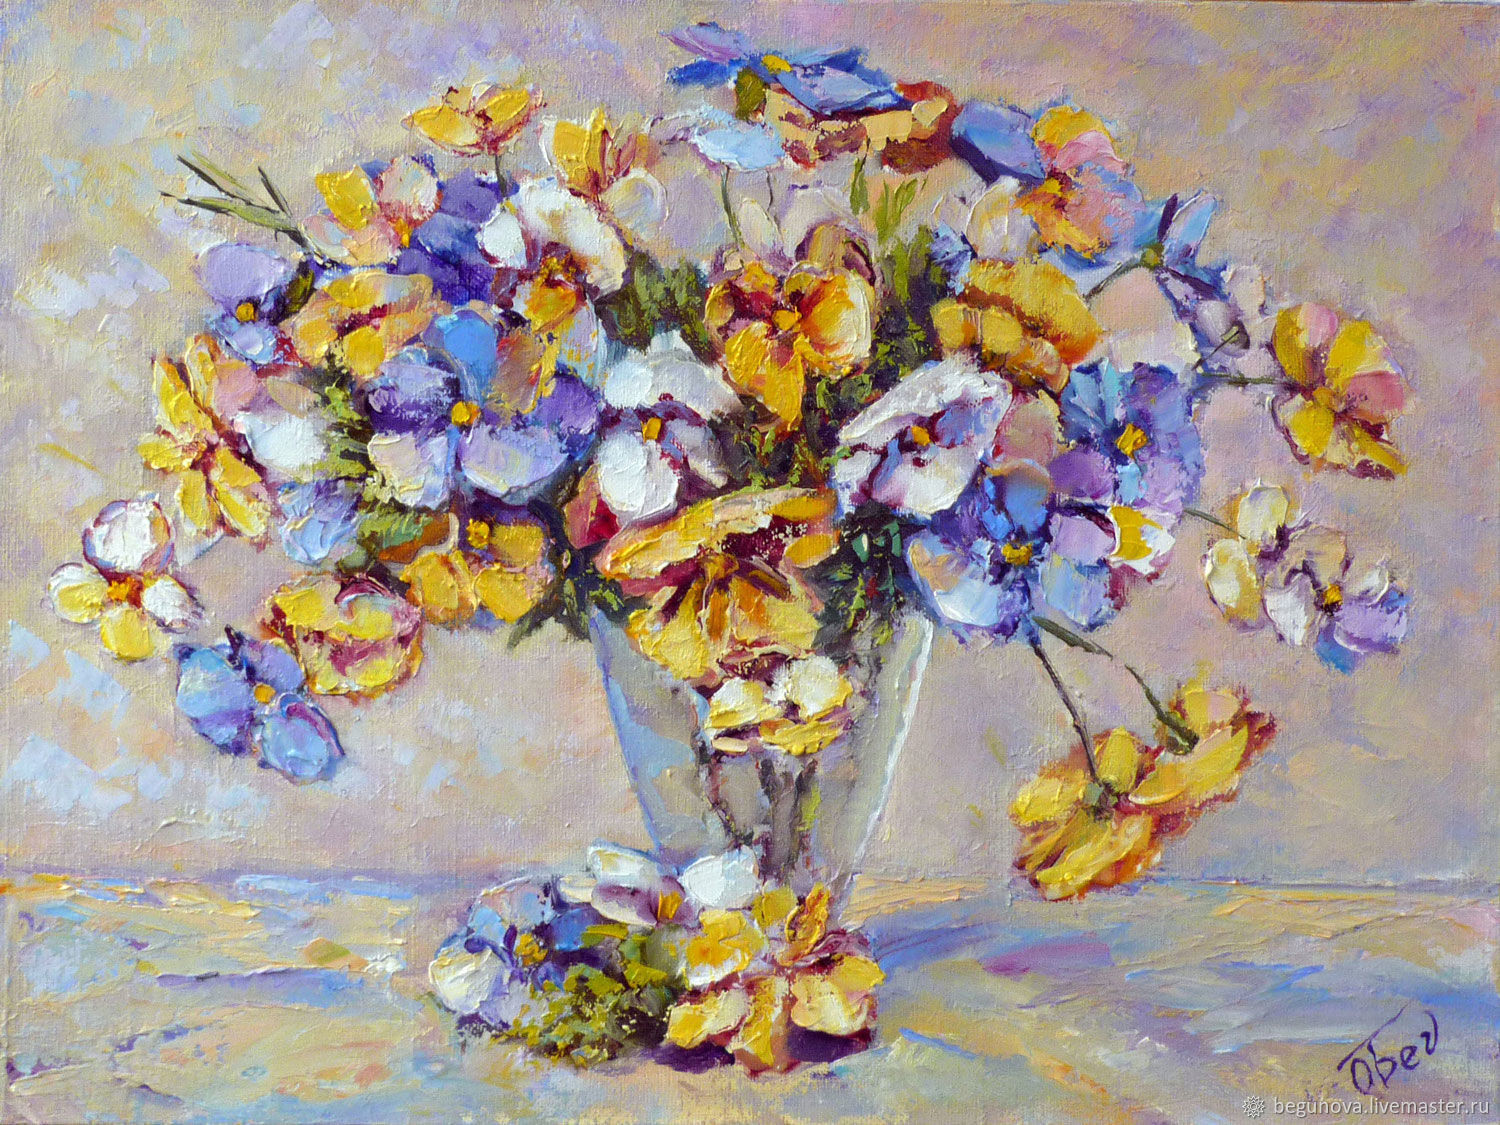 oil paintings of flowers in a vase of oil painting flowers pansypansies painting shop online on within flower paintings handmade livemaster handmade buy oil painting flowers pansy